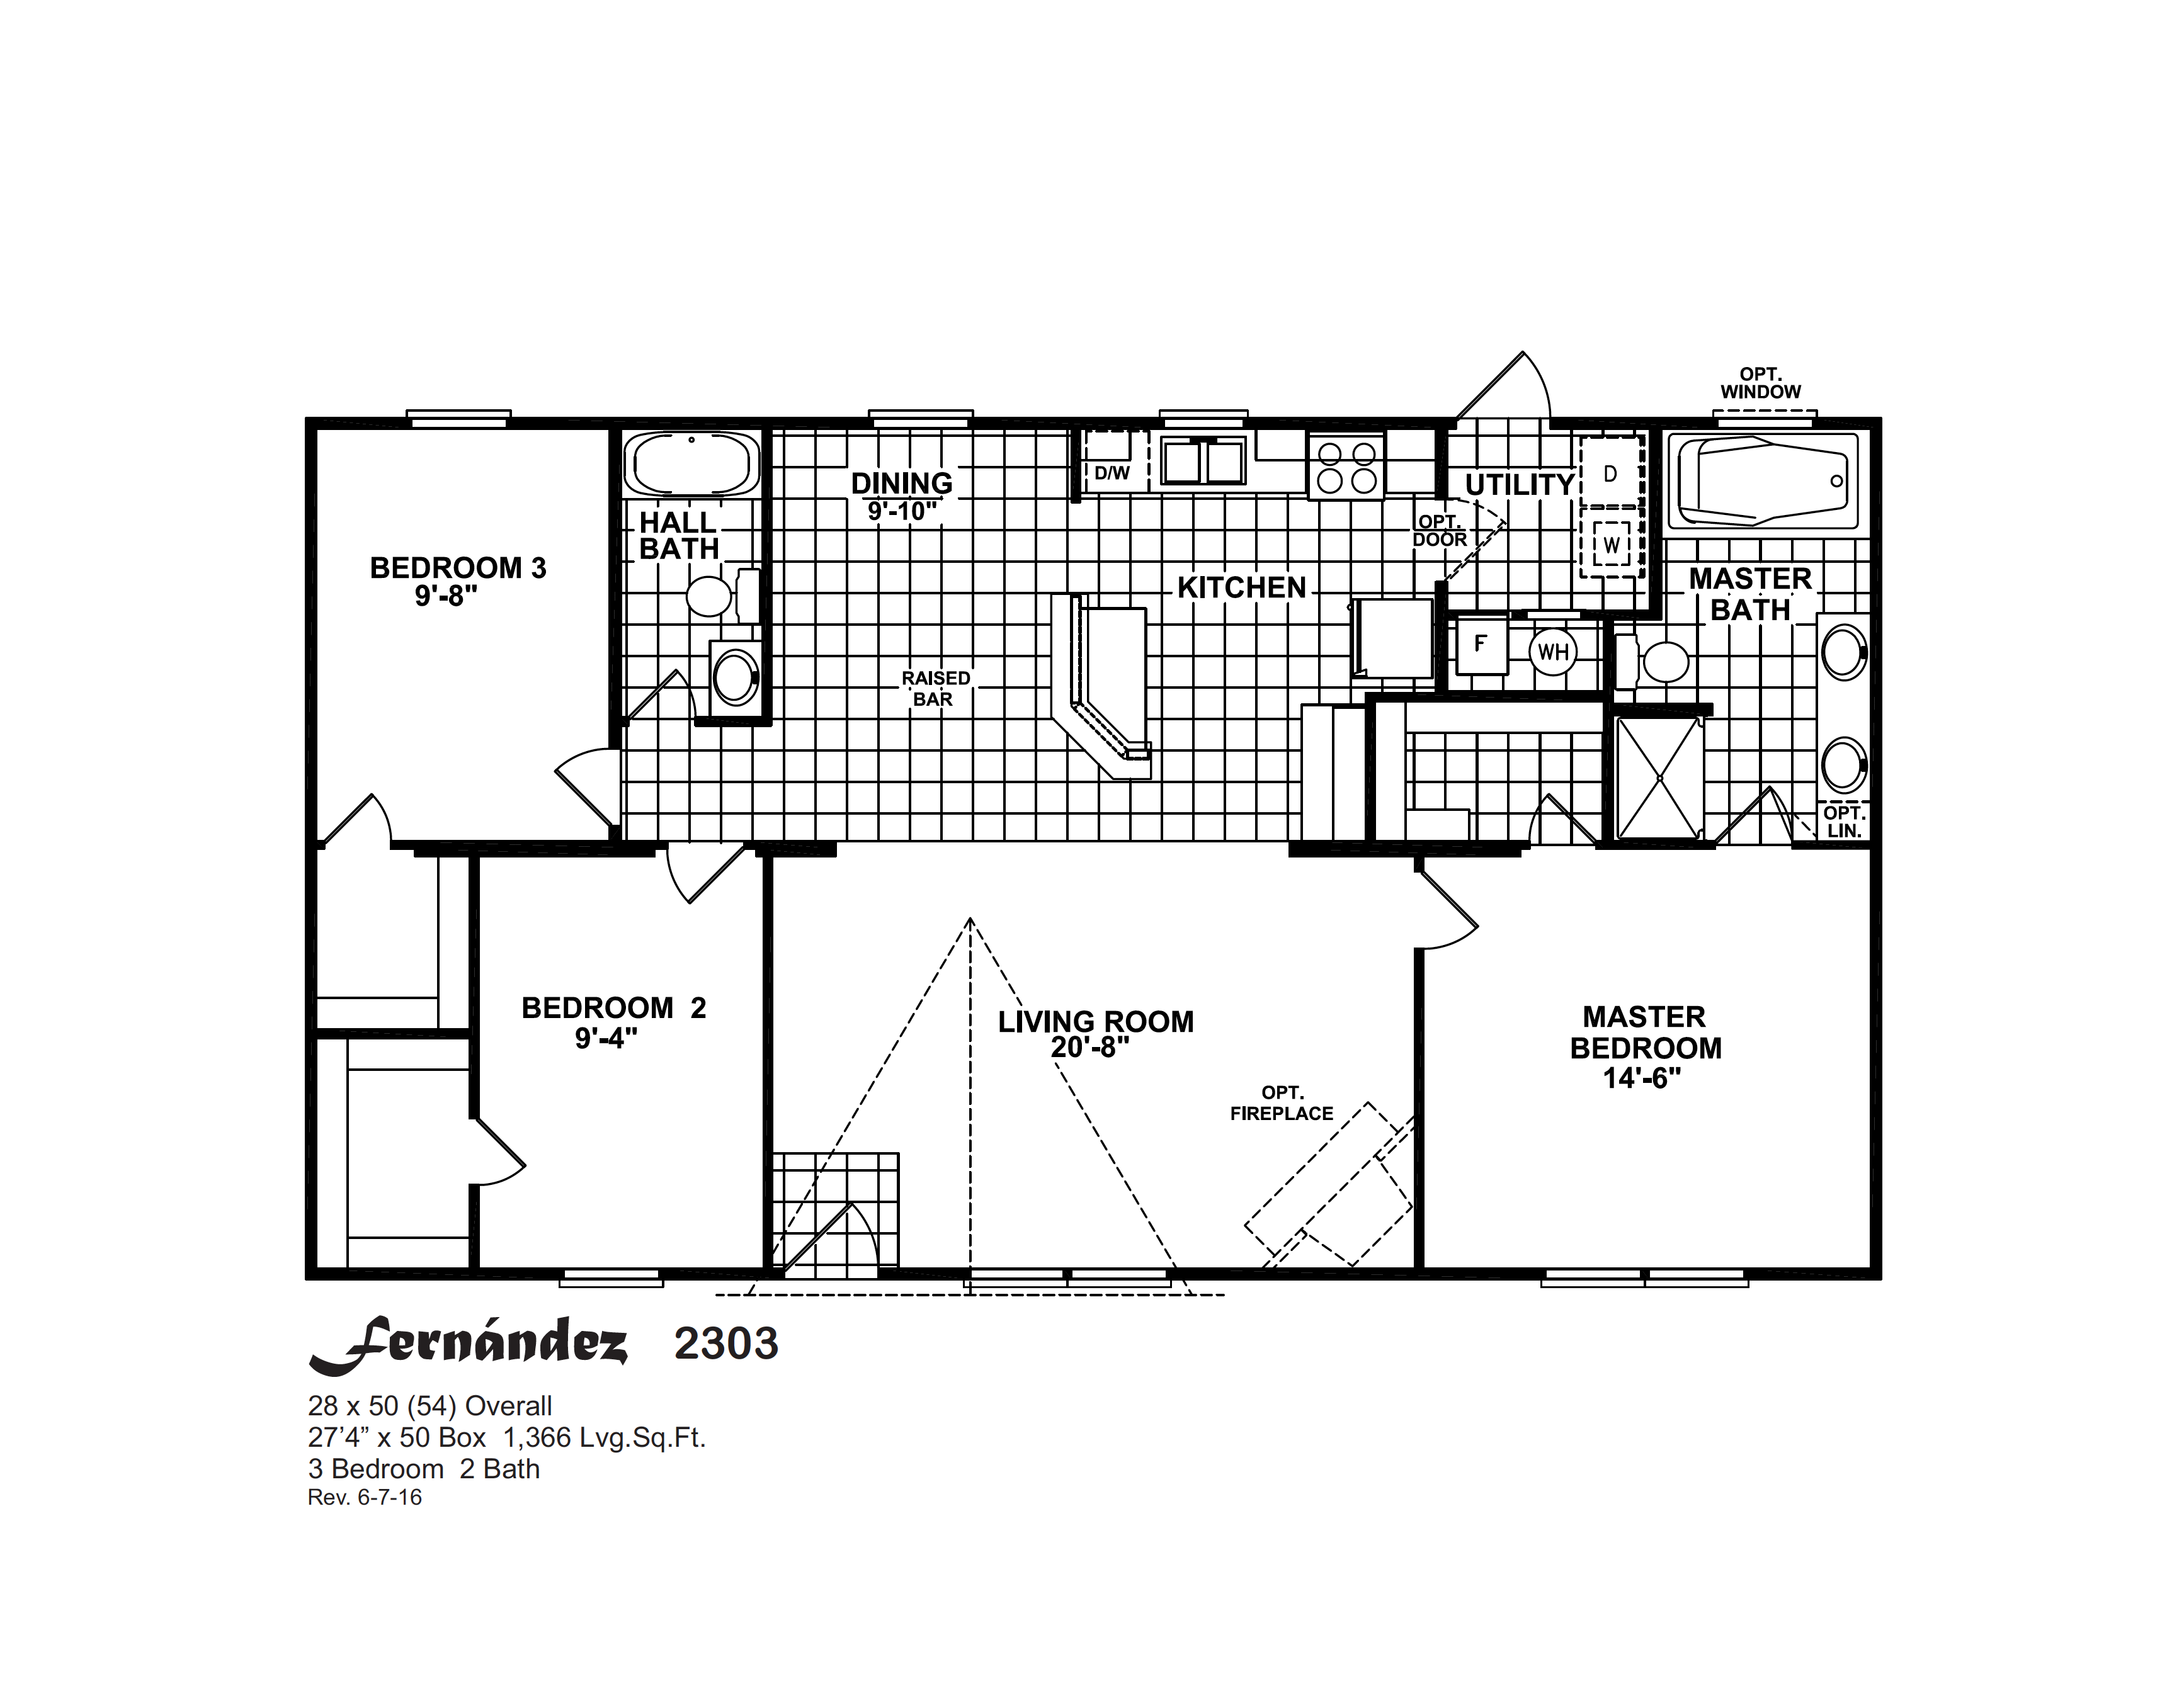 Floor Plan Layout: Compass / Fernández 2303